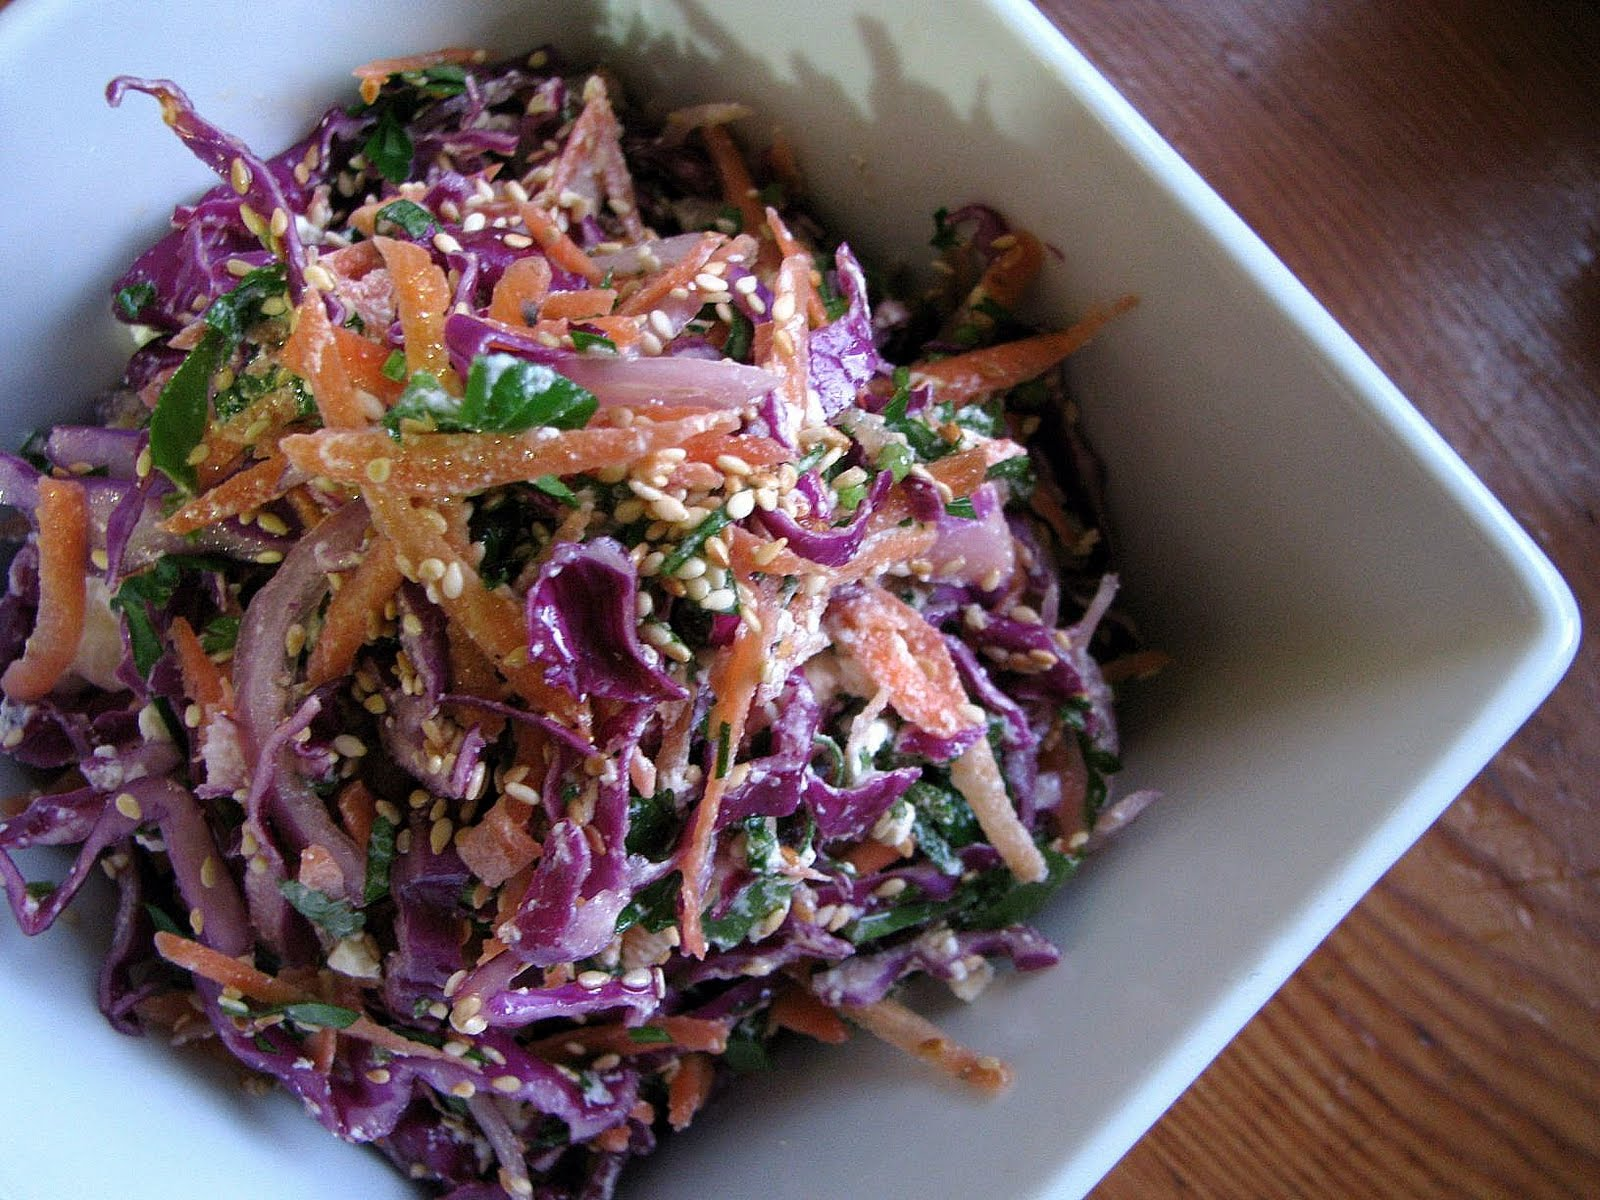 Red cabbage salad dressing recipes